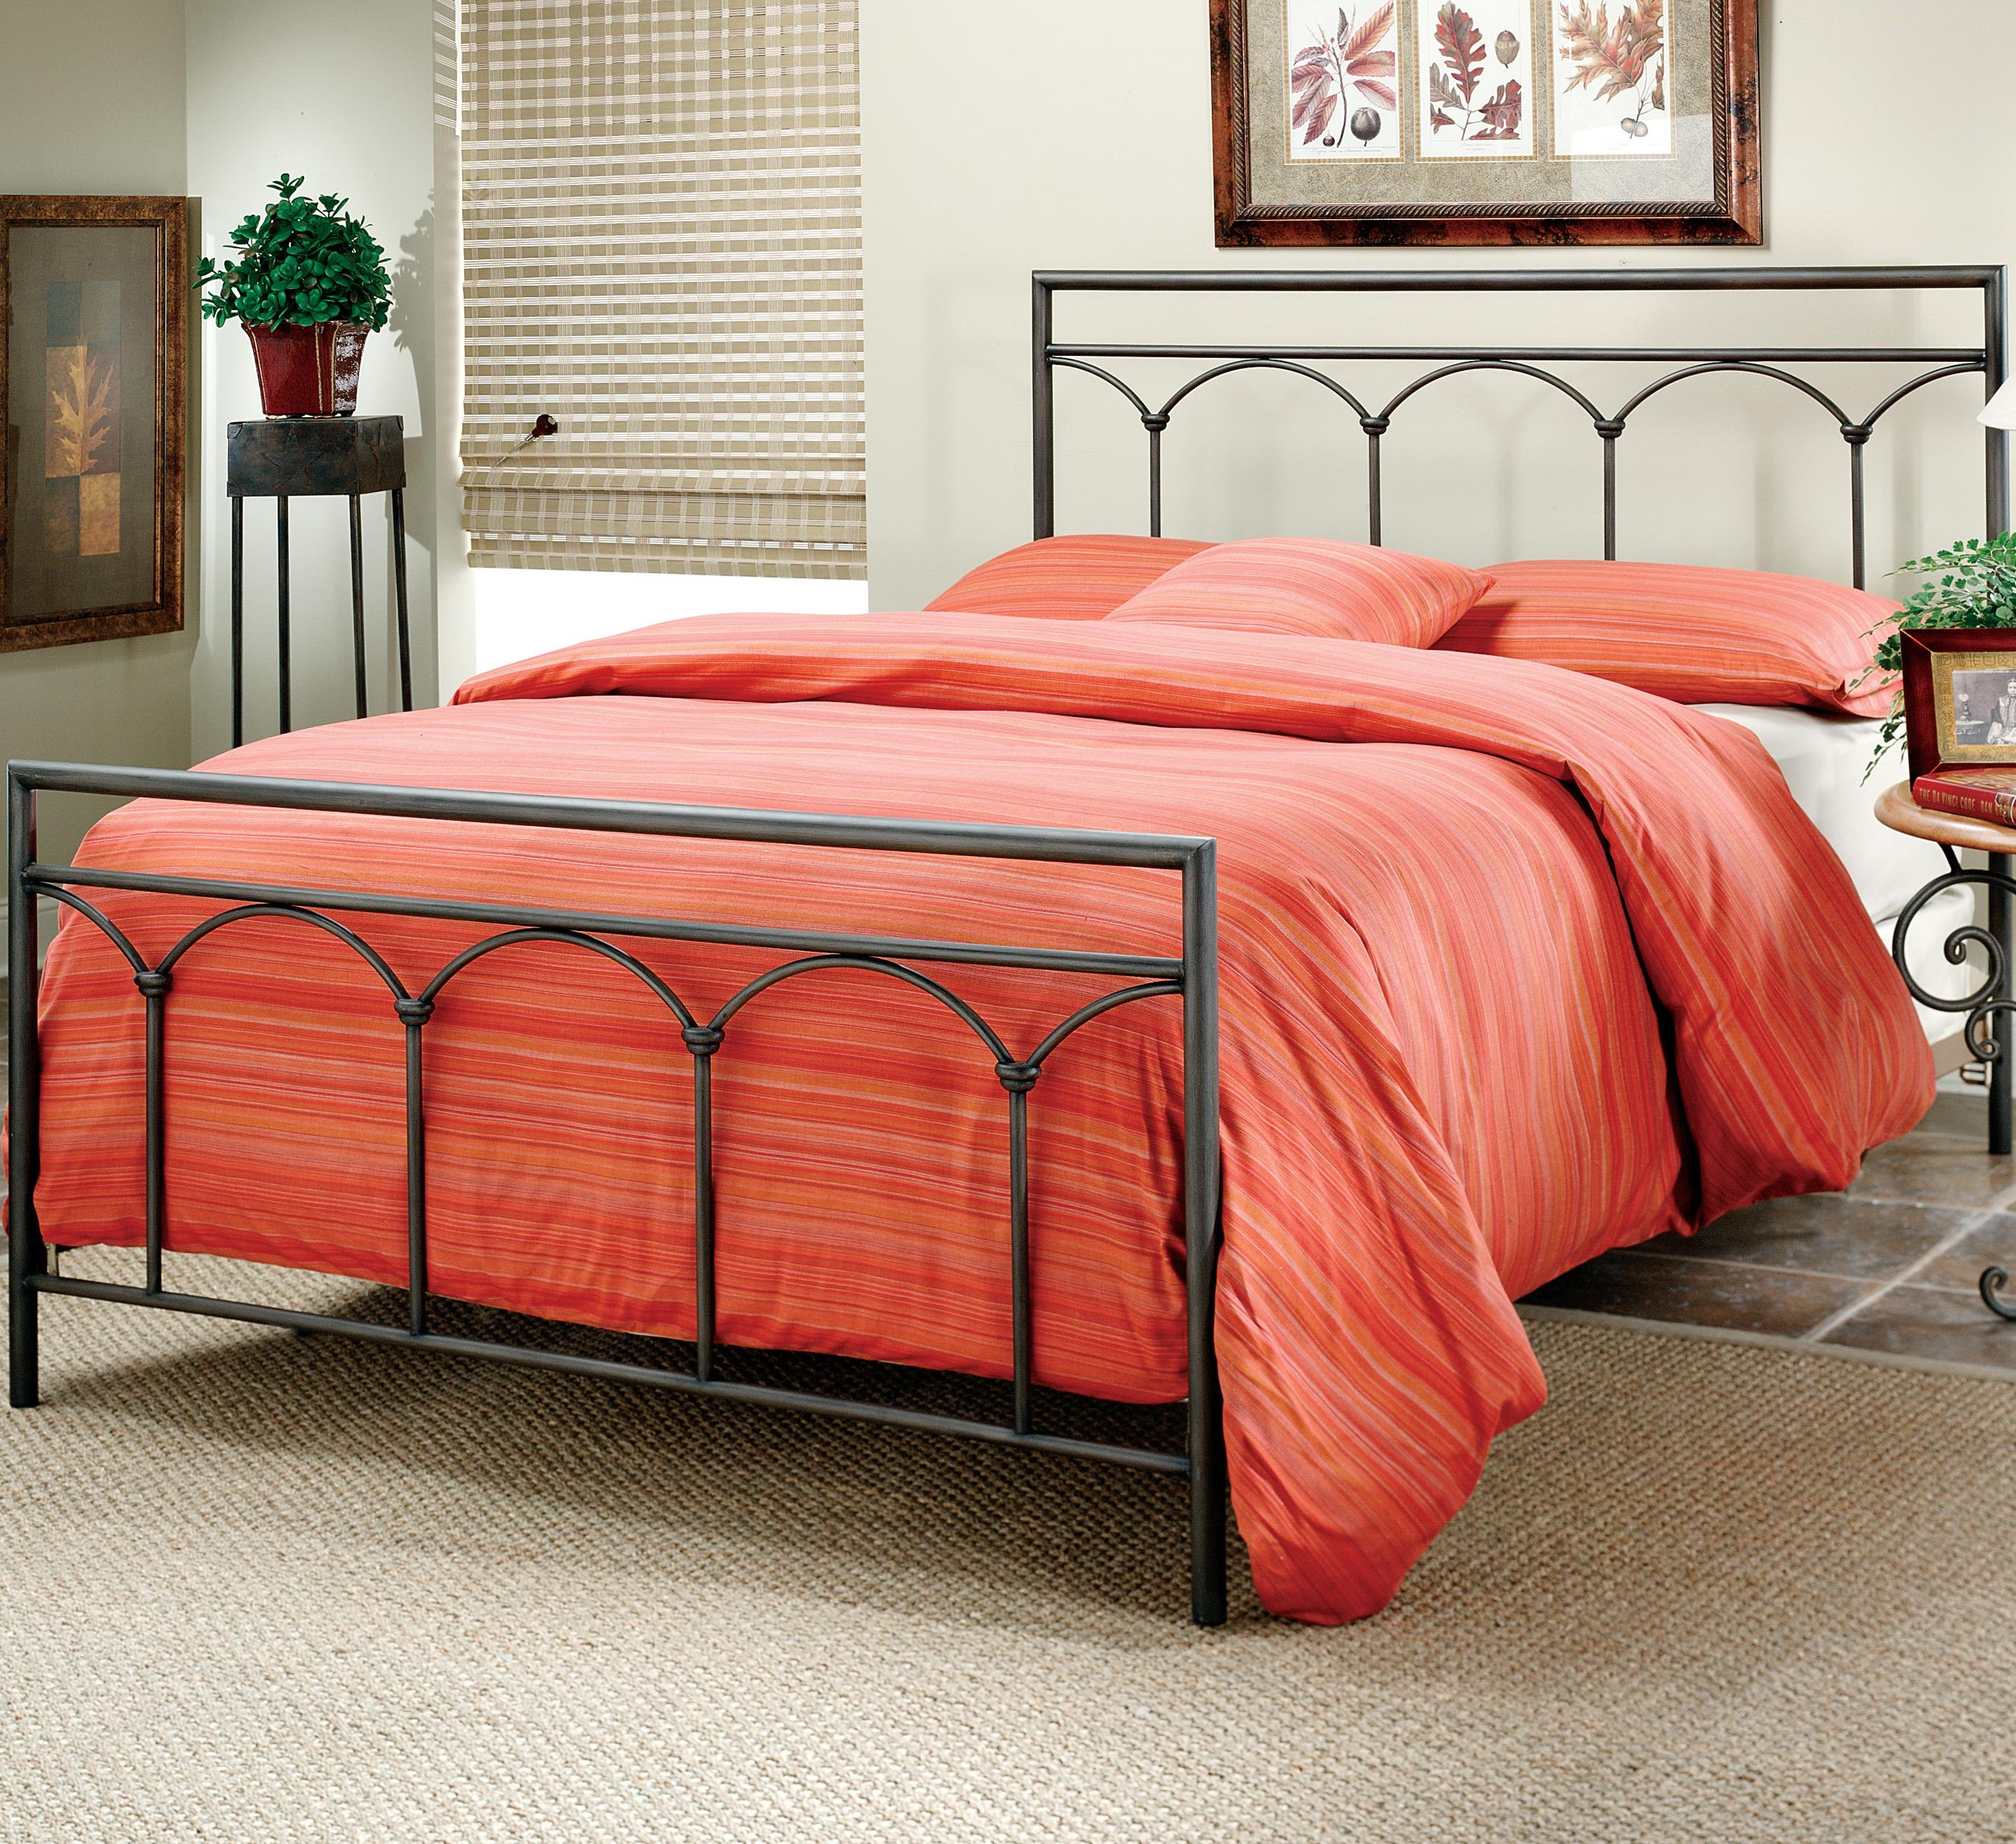 Metal Beds Queen McKenzie Bed by Hillsdale at Steger's Furniture